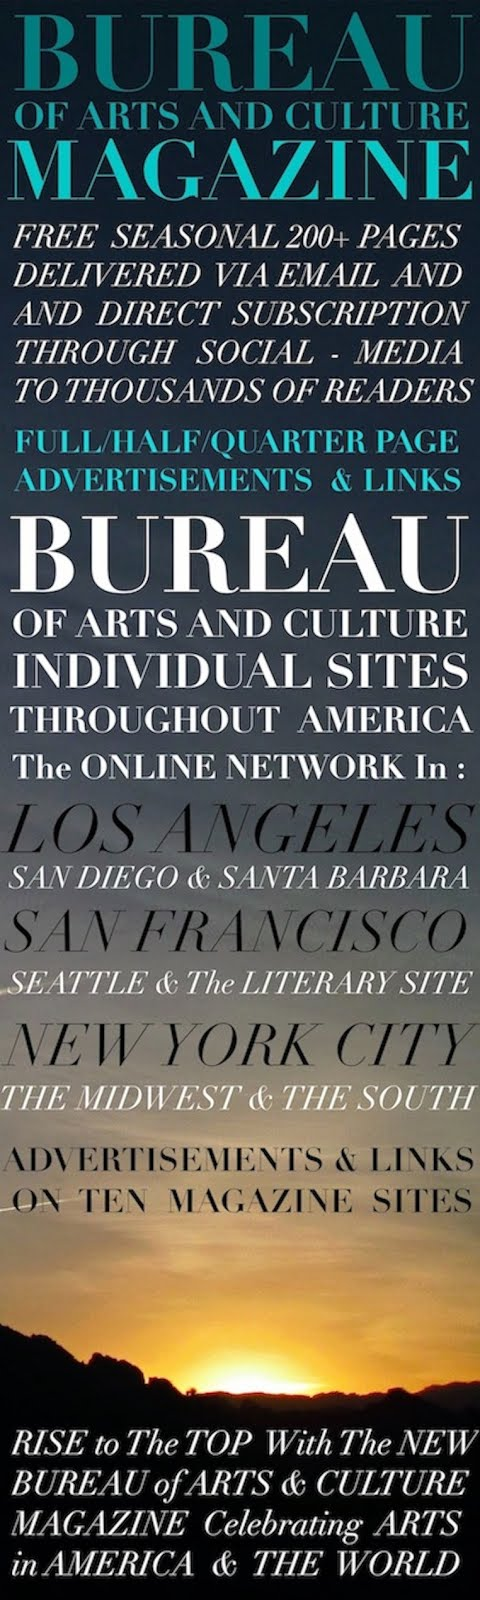 THE BUREAU NETWORKS